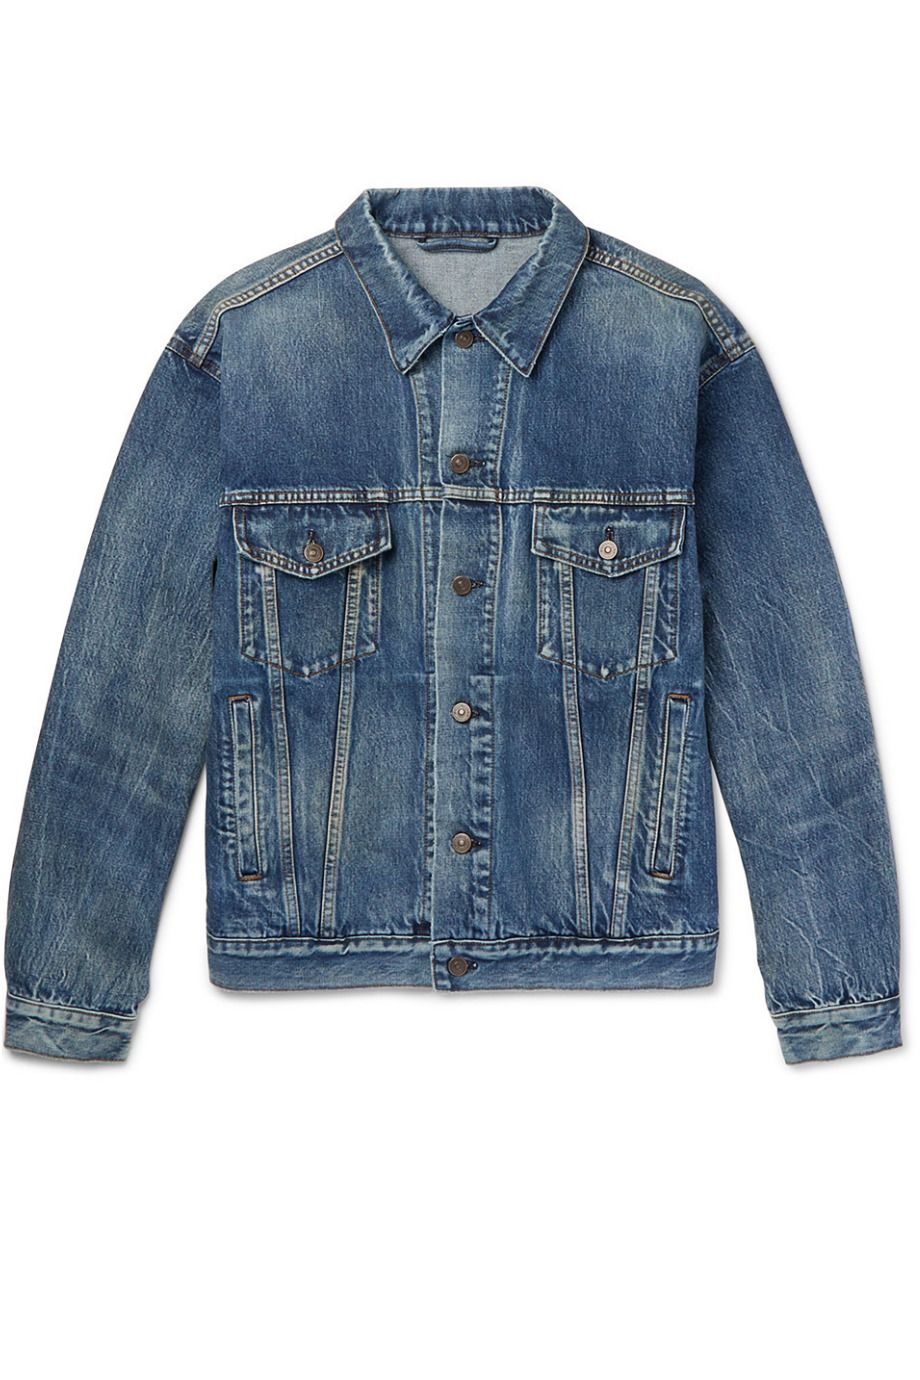 MR PORTER X BALENCIAGA Like A Man Oversized Printed Denim Jacket